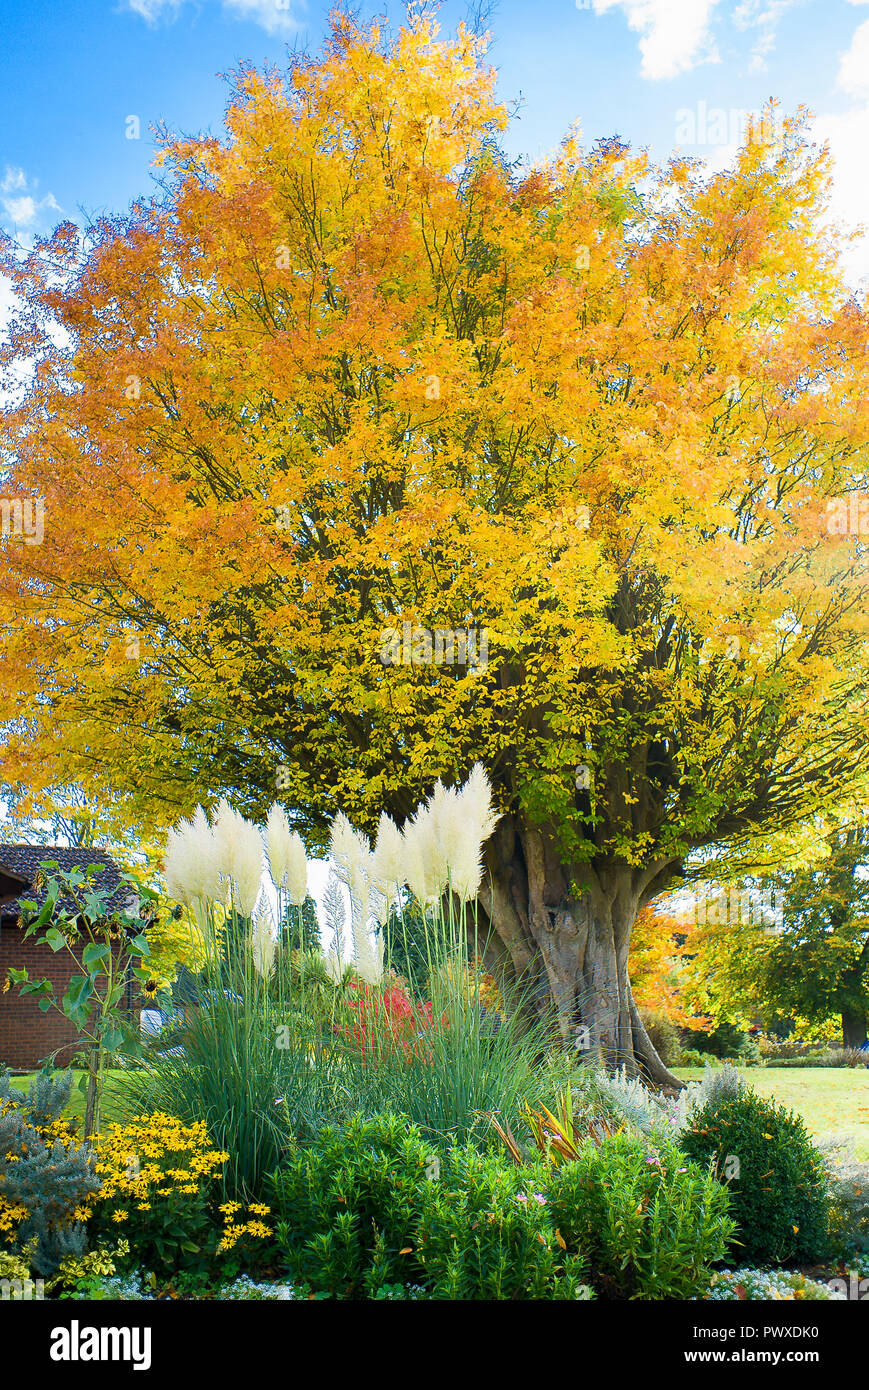 Autumn leaves on a truncated old Caucasian Elm tree in Bromham village Wiltshire England UK - Stock Image